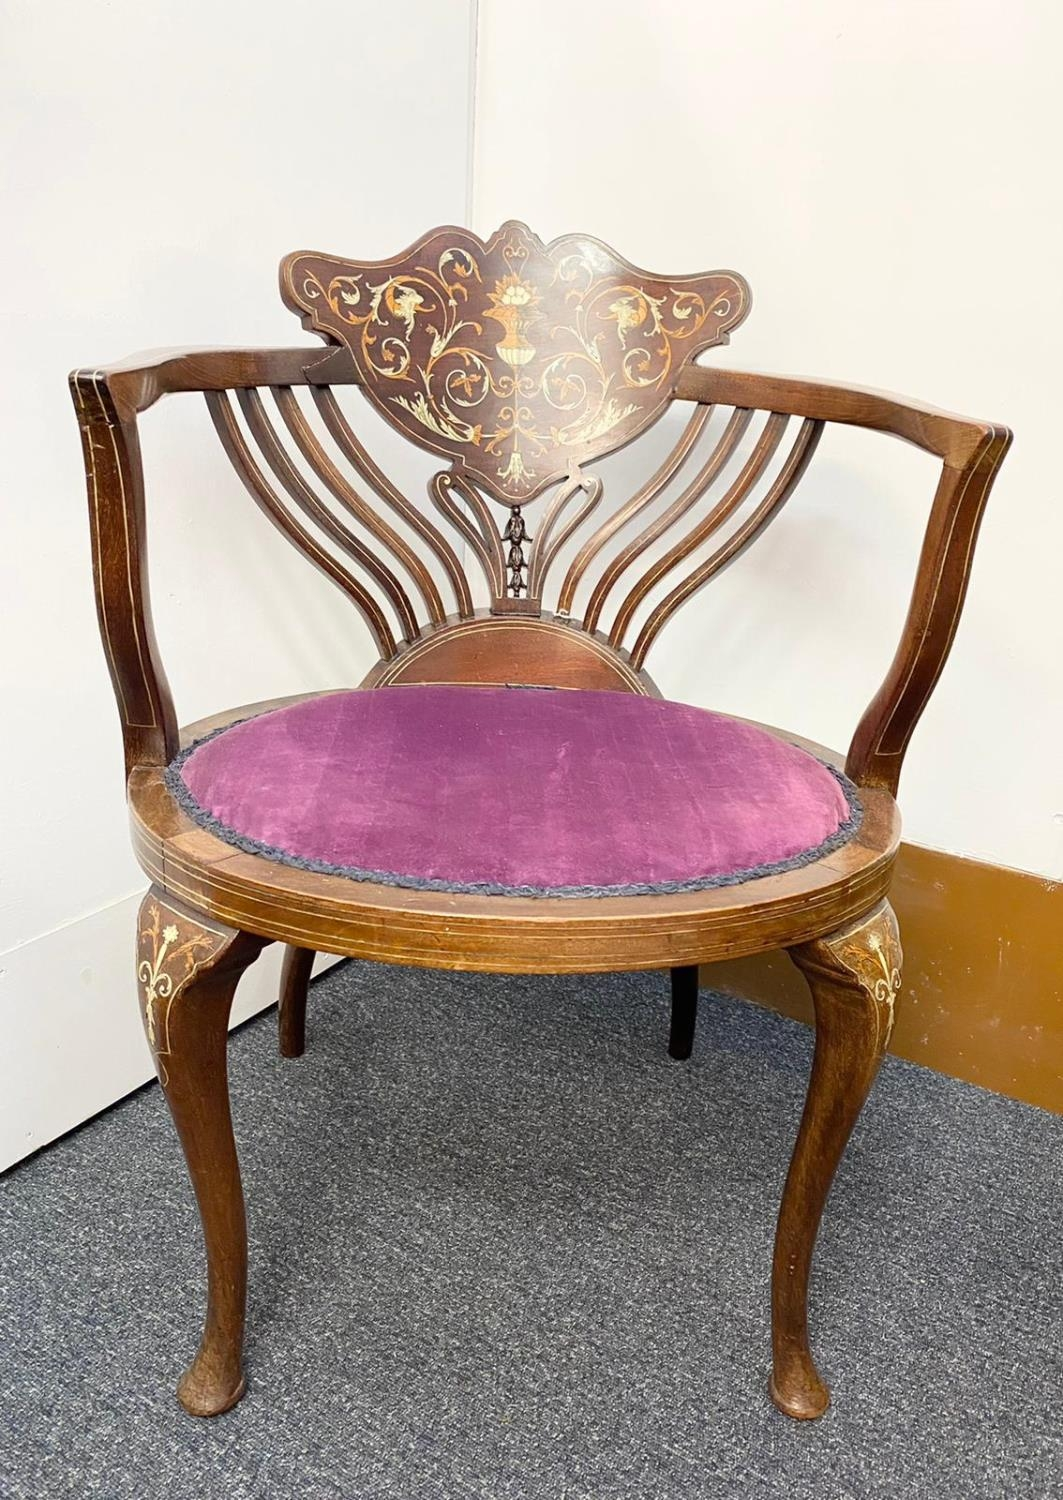 Designed by Stephen Web for Collinson and Lock and Sold by Waring & Gillow in 1890 to the Thomas - Image 5 of 8